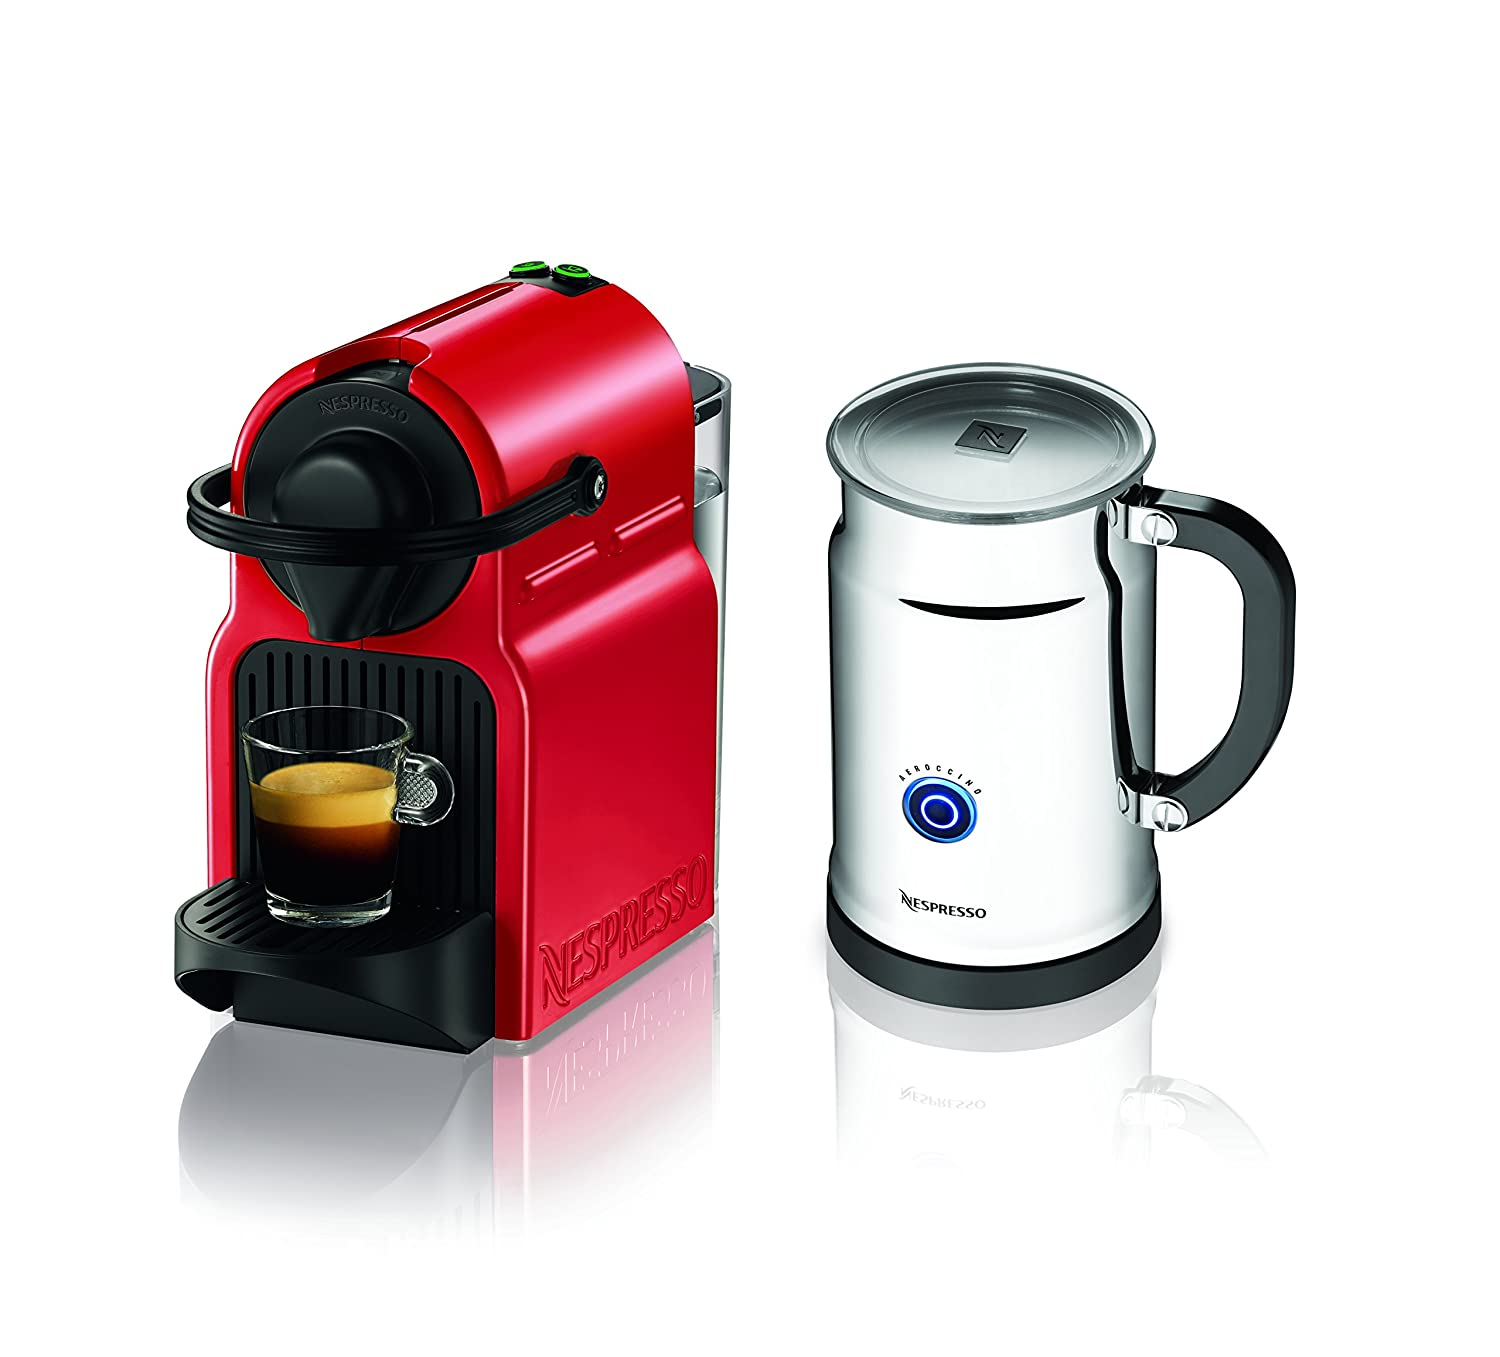 Nespresso Coffee Maker Manual : Nespresso Inissia Espresso Maker with Aeroccino Plus Milk Frother, Red eBay